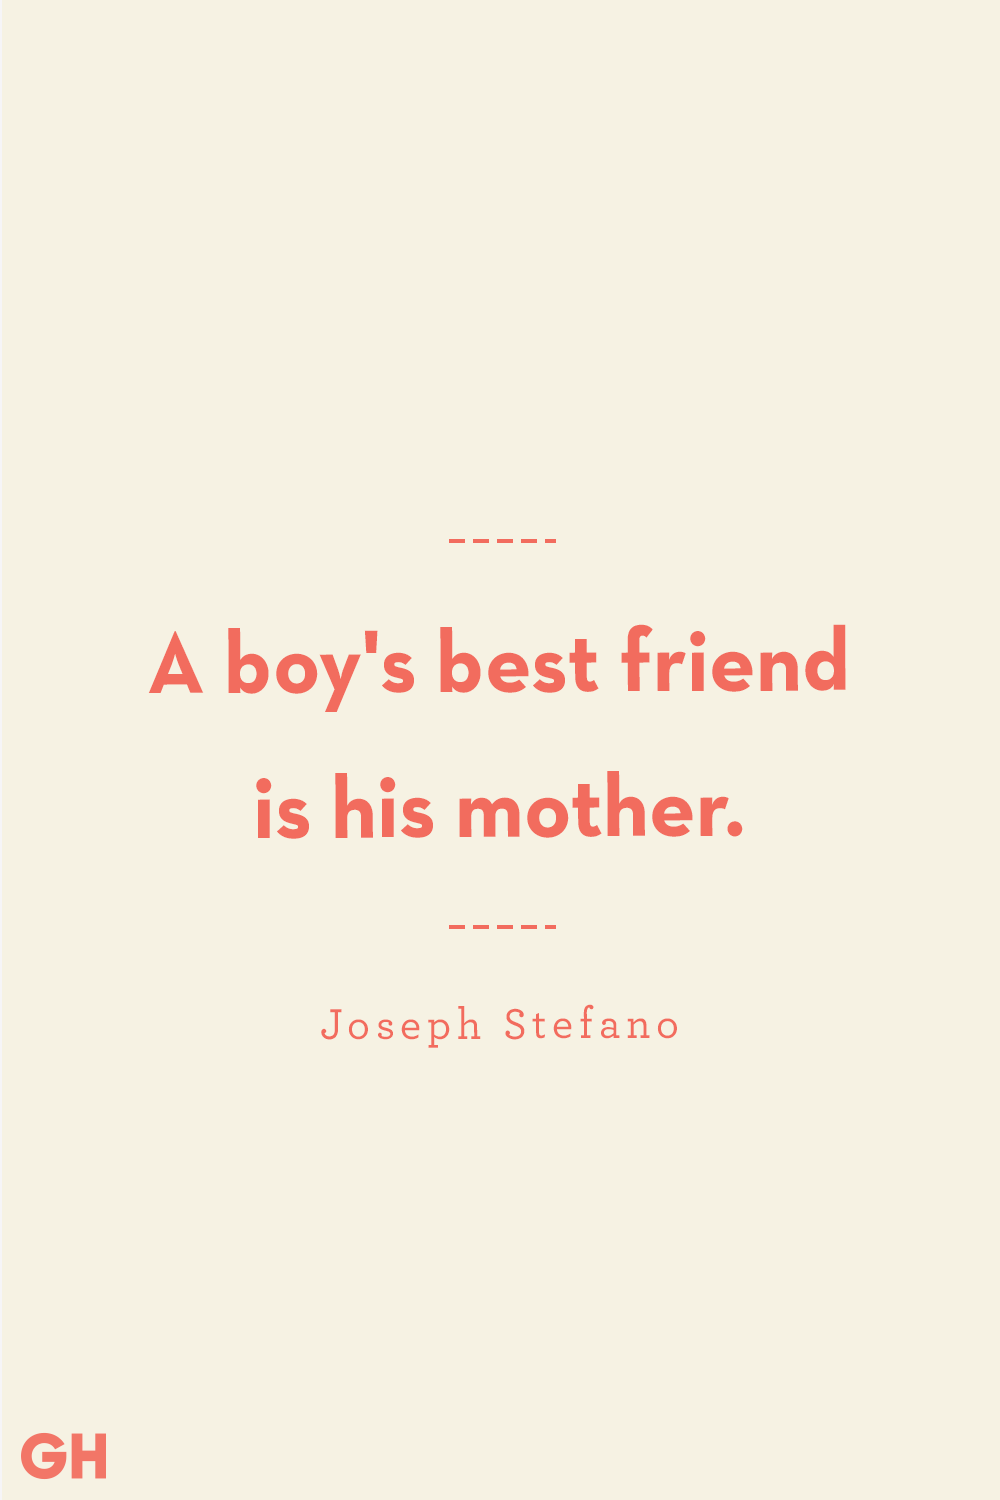 3 Heartfelt Mother-Son Quotes - Mother and Son Sayings